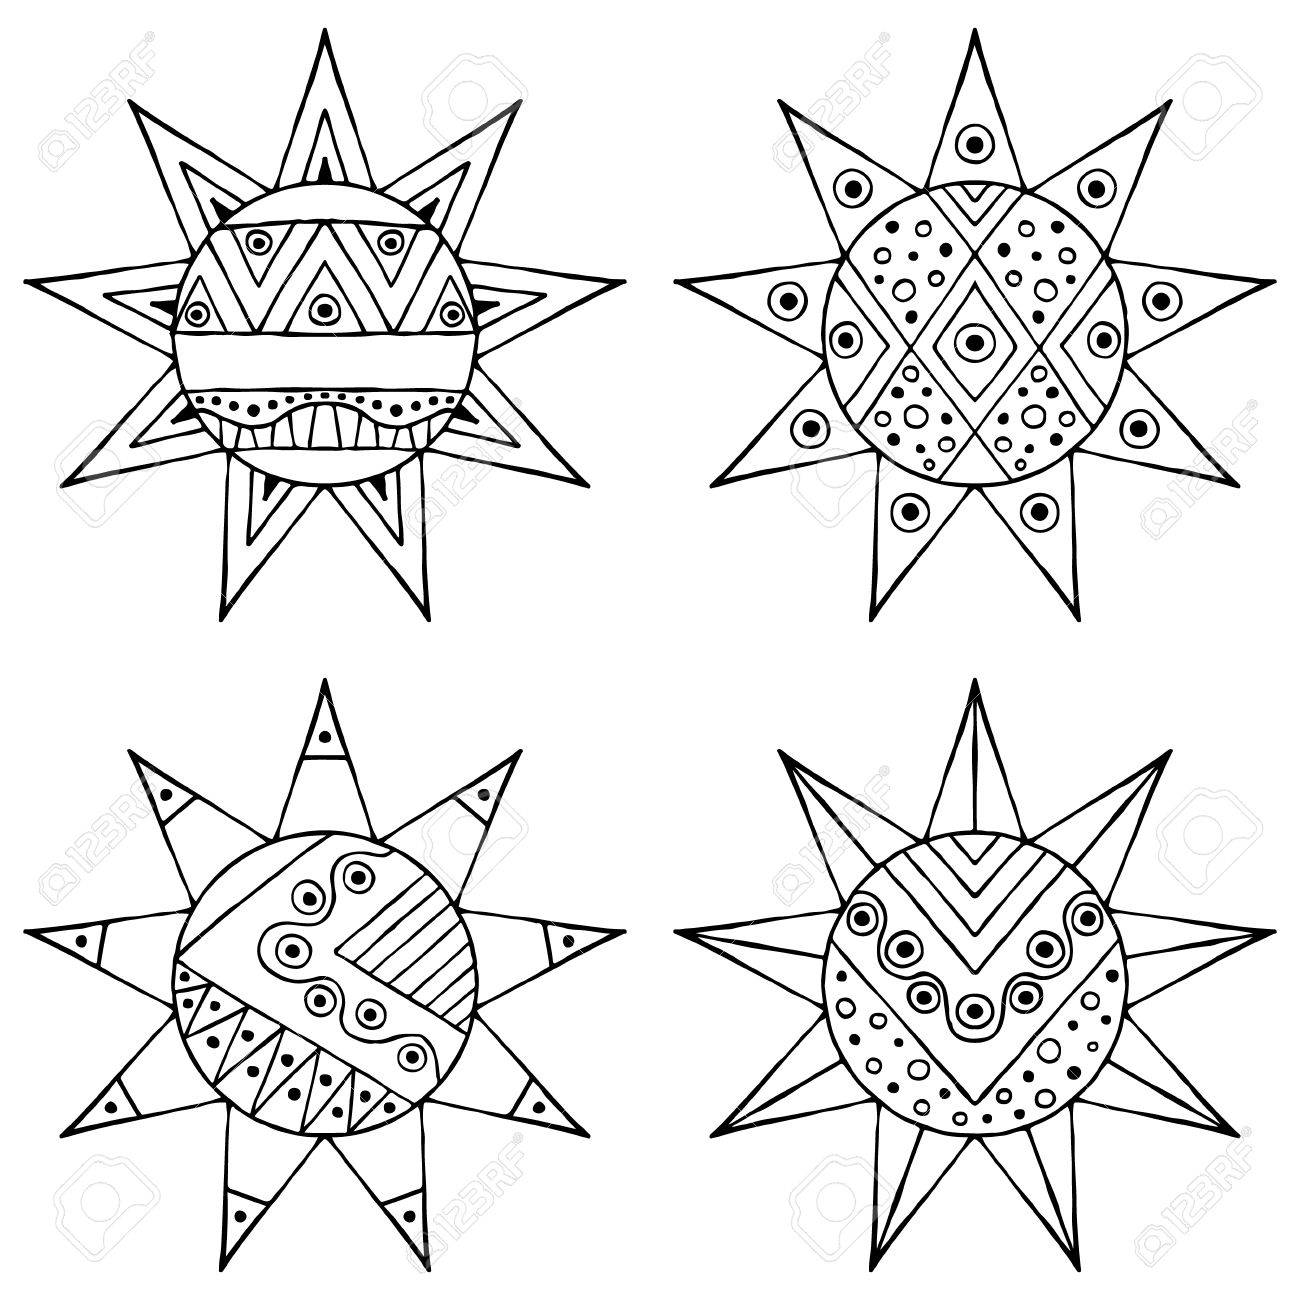 1300x1300 Set Of Vector Hand Drawn Decorative Stylized Black And White